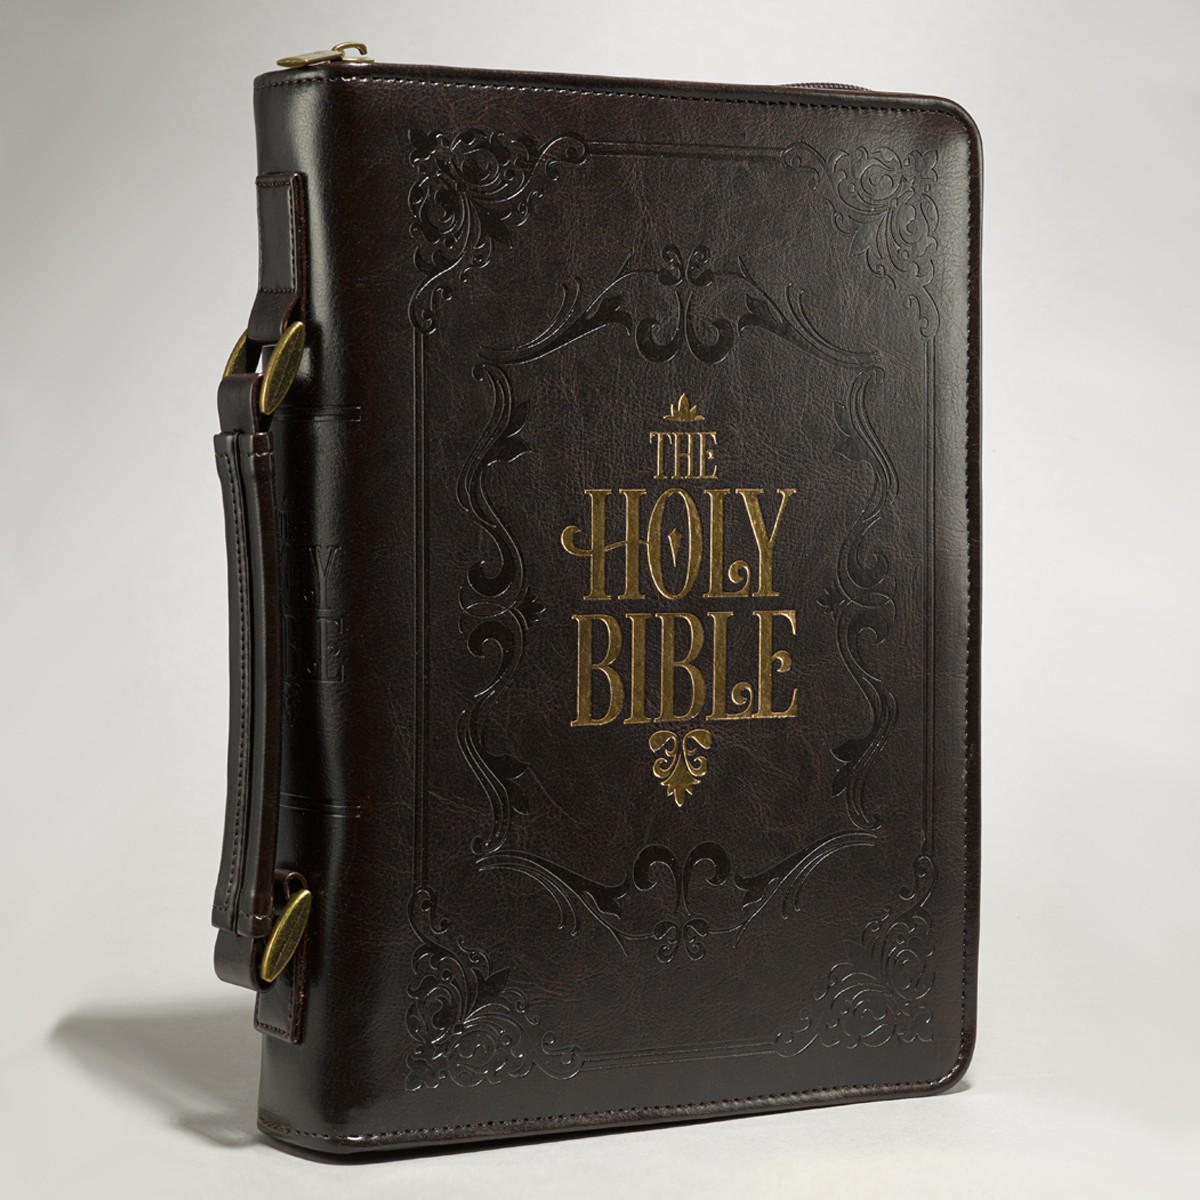 The Holy Bible In Brown Bible Cover